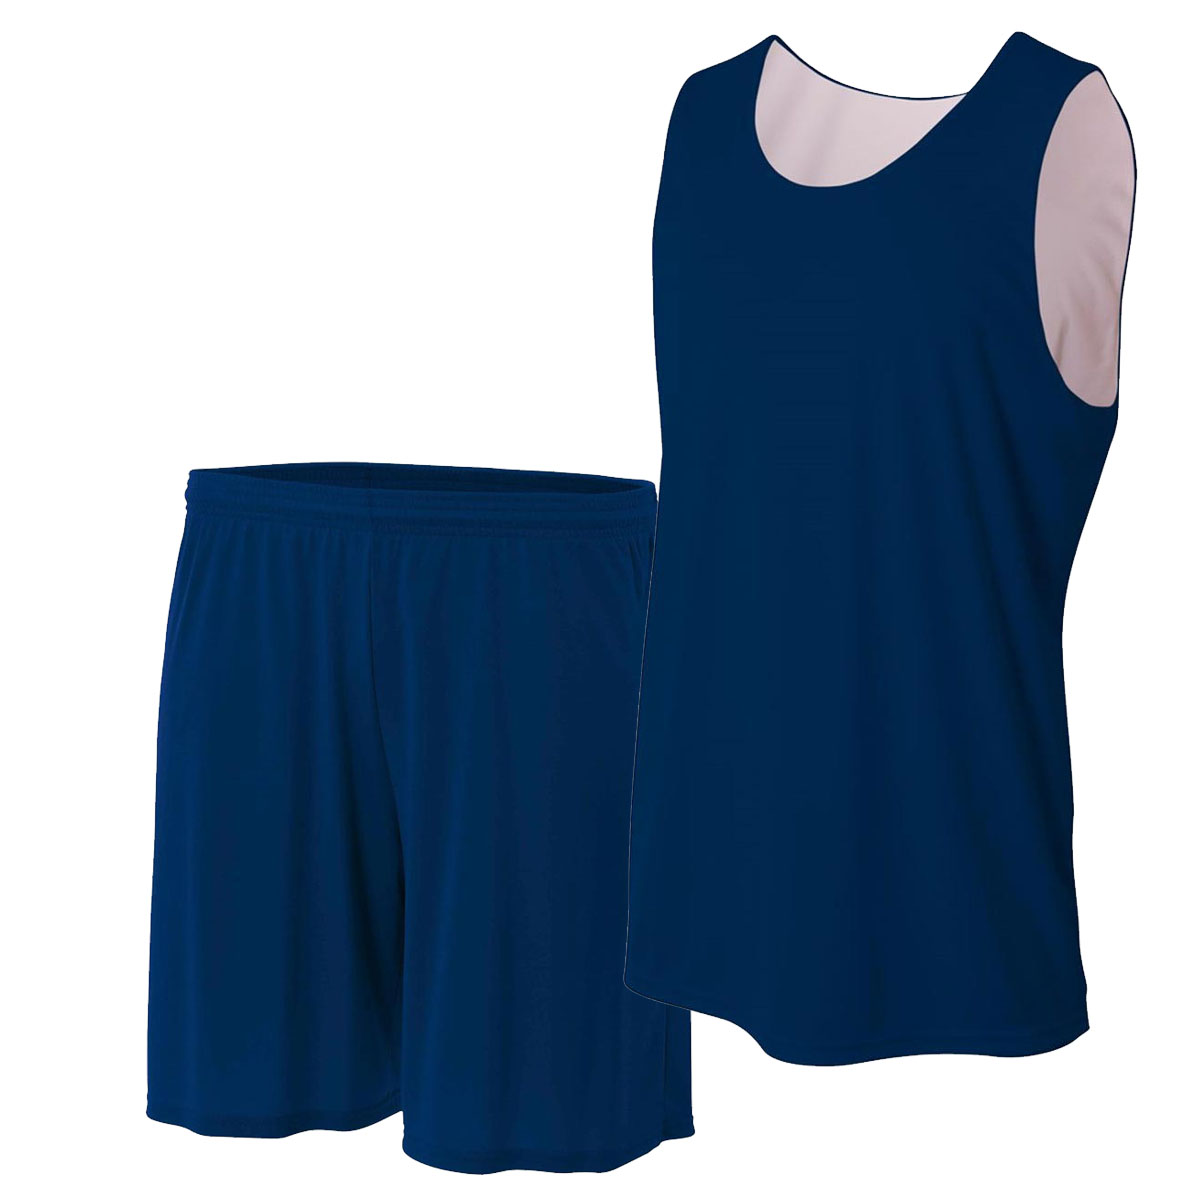 Reversible Basketball Uniforms Manufacturers in Noida